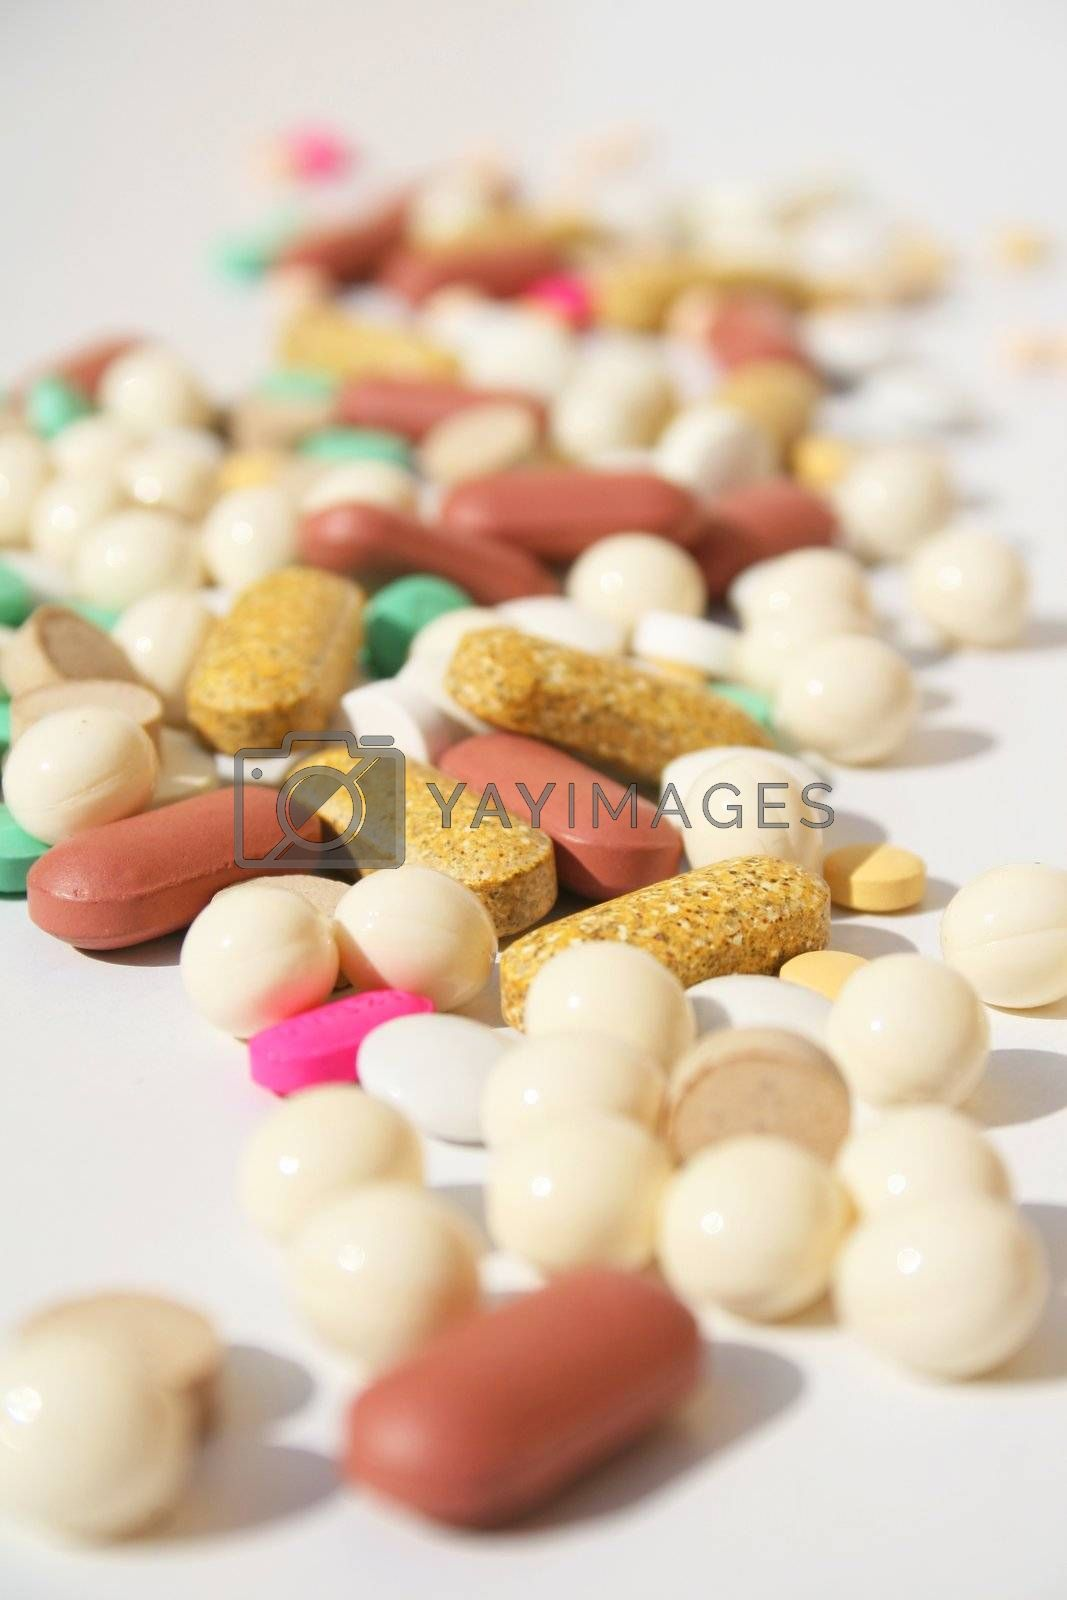 Various pills against white background with shallow depth of field on background